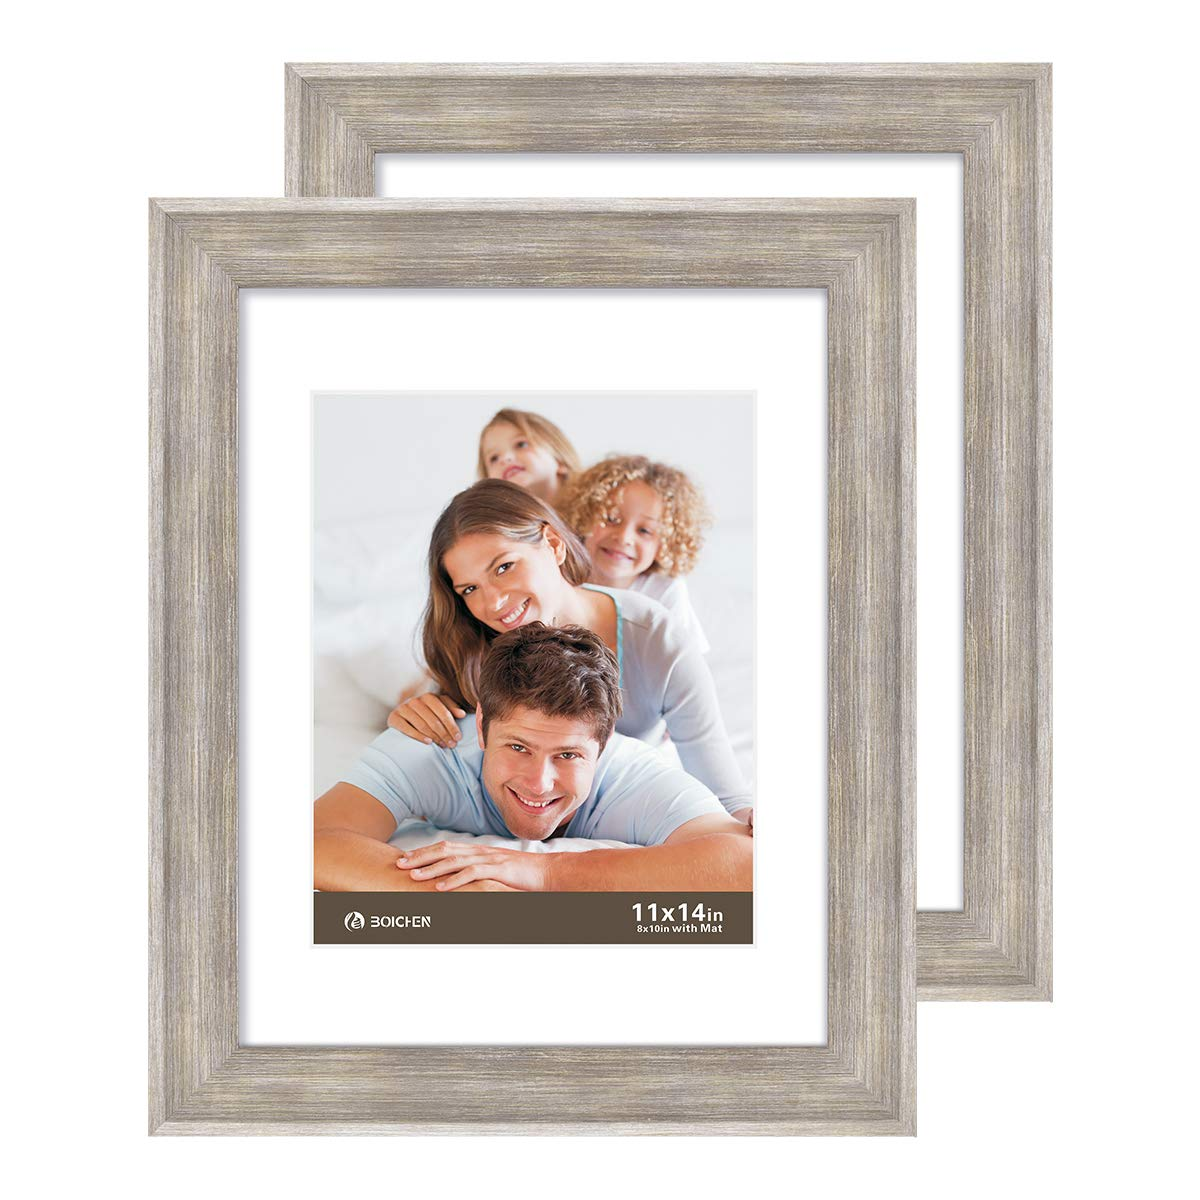 Boichen 11X14 Picture Frames 2 Pack Rustic Style Wood Pattern High Definition Glass for Tabletop Display and Wall mounting Photo Frame Silver Grey Wood by Boichen